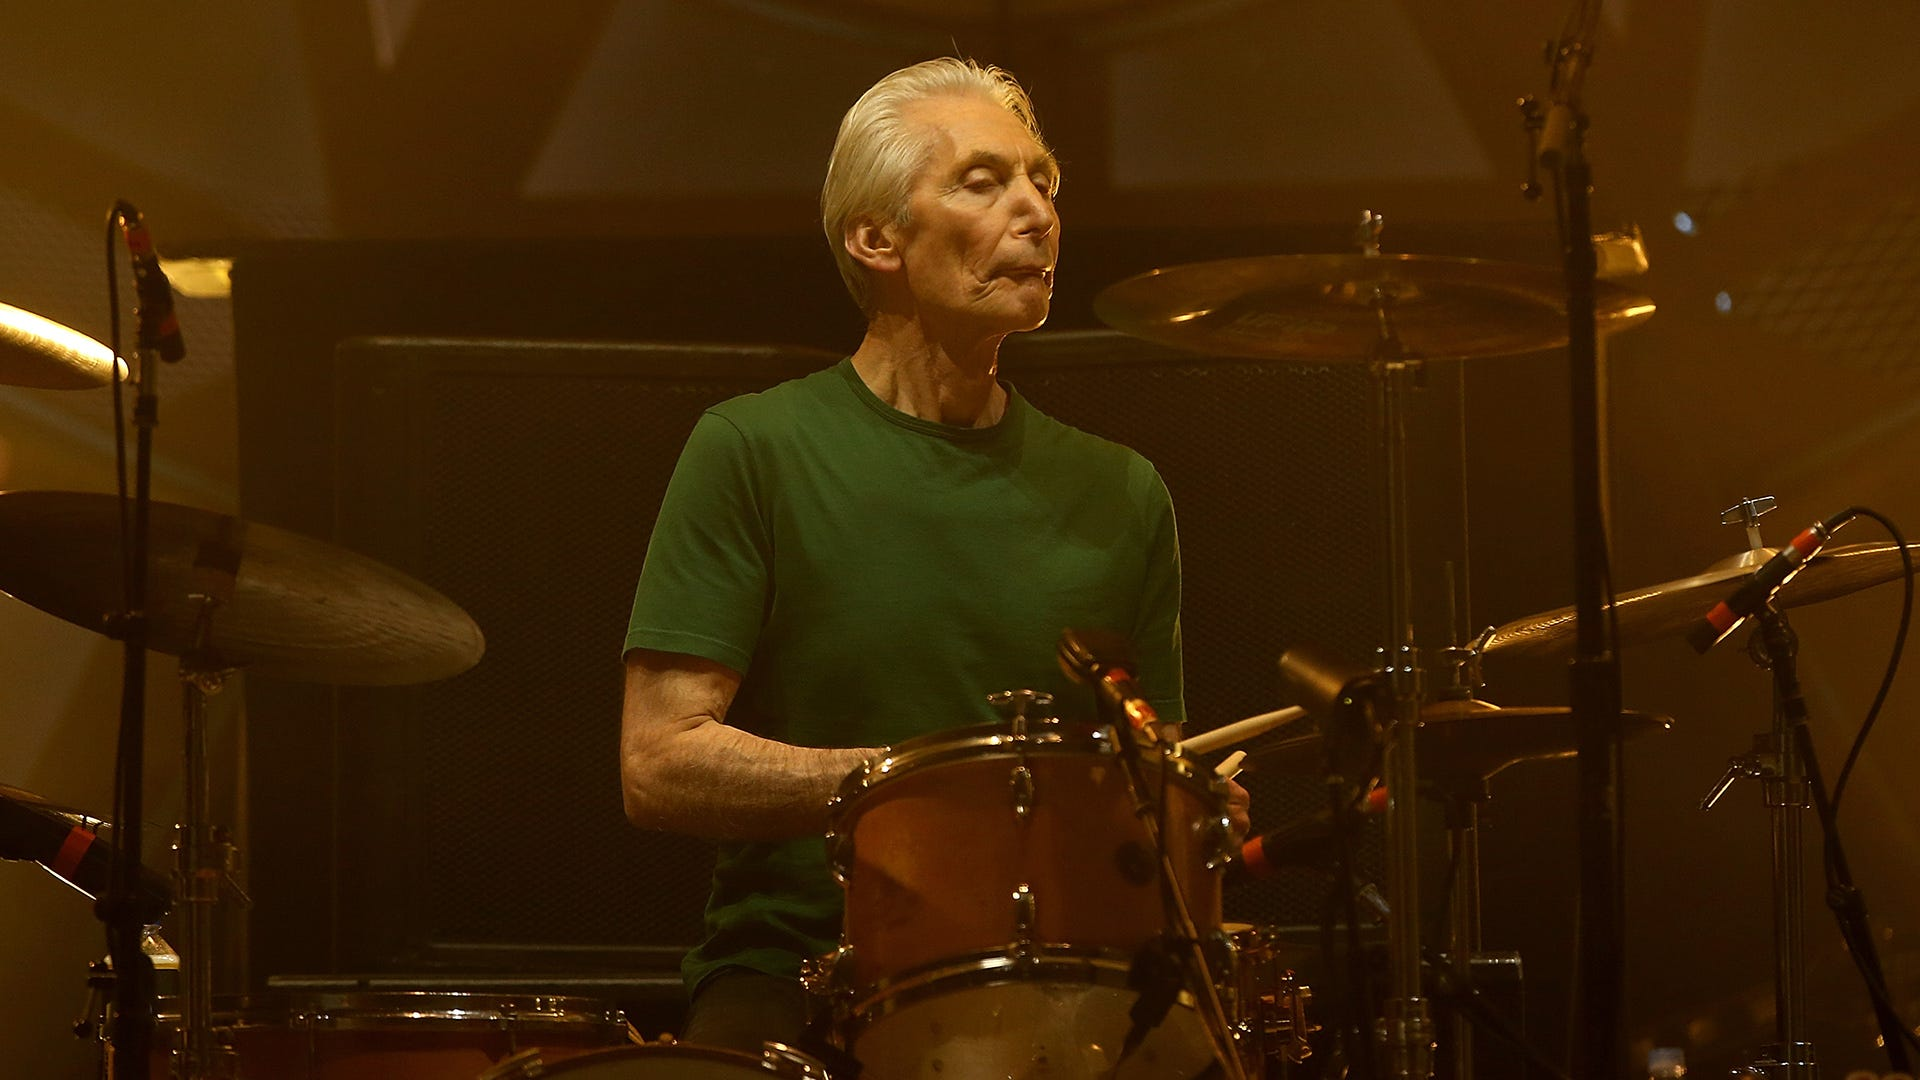 Charlie Watts is one of the 7 best Rock drummers of all time: Here are the others